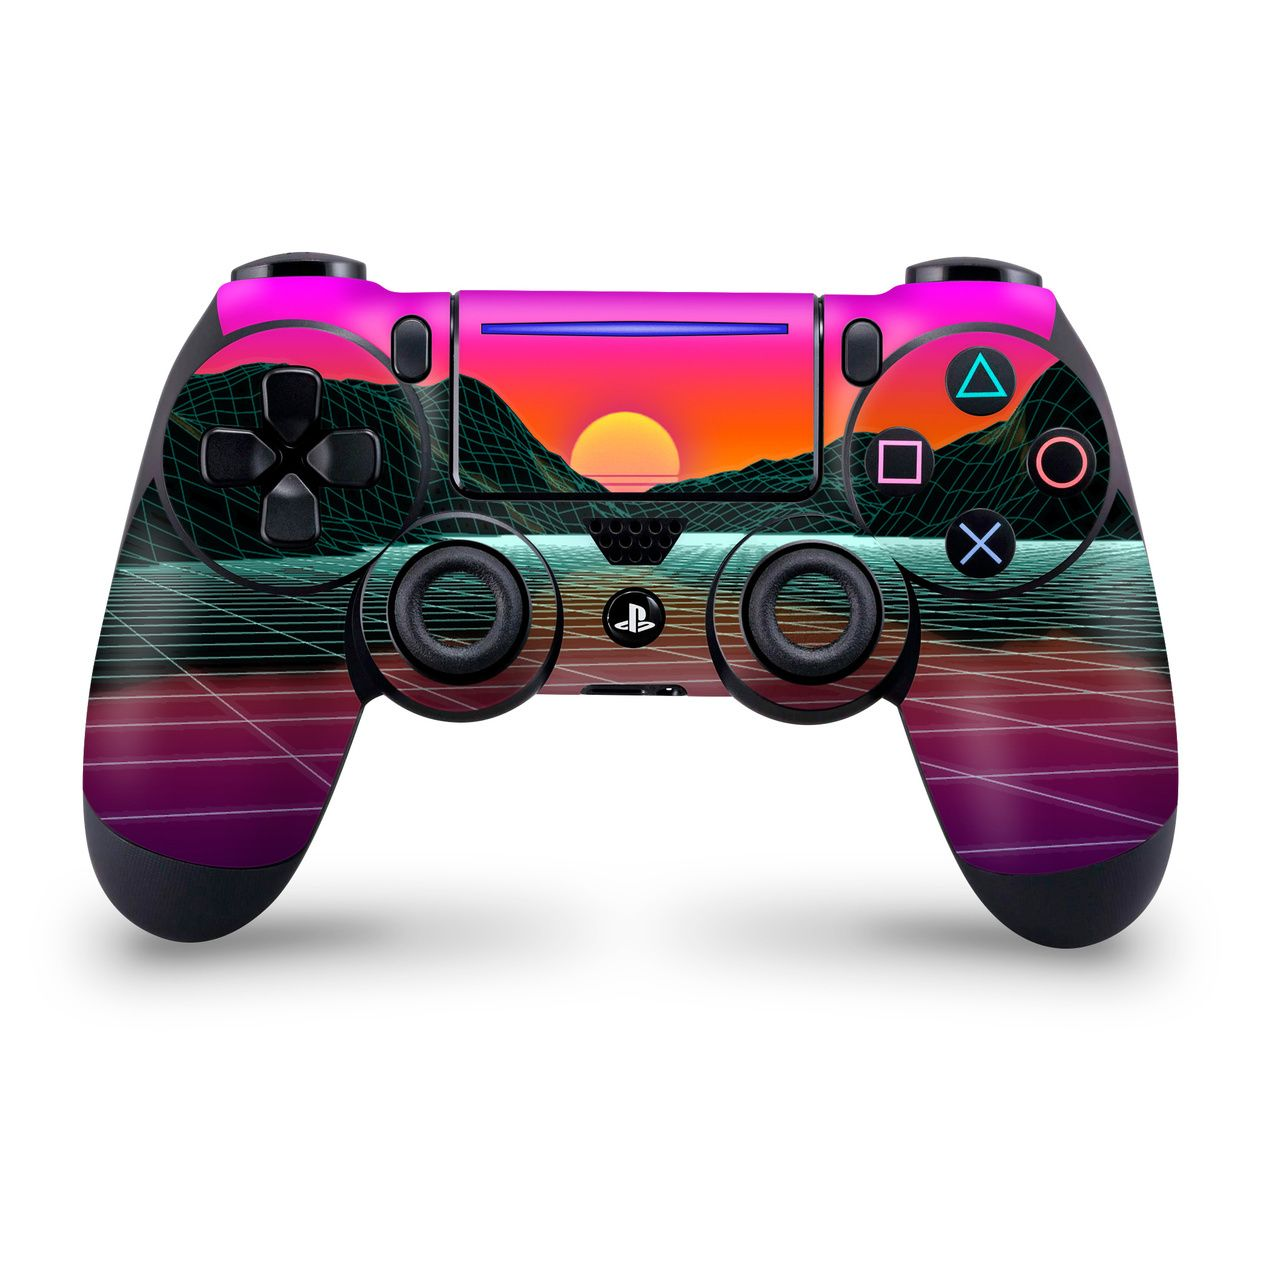 Outrun Mountain Sunset PS4 Pro/Slim Controller Skin Ps4